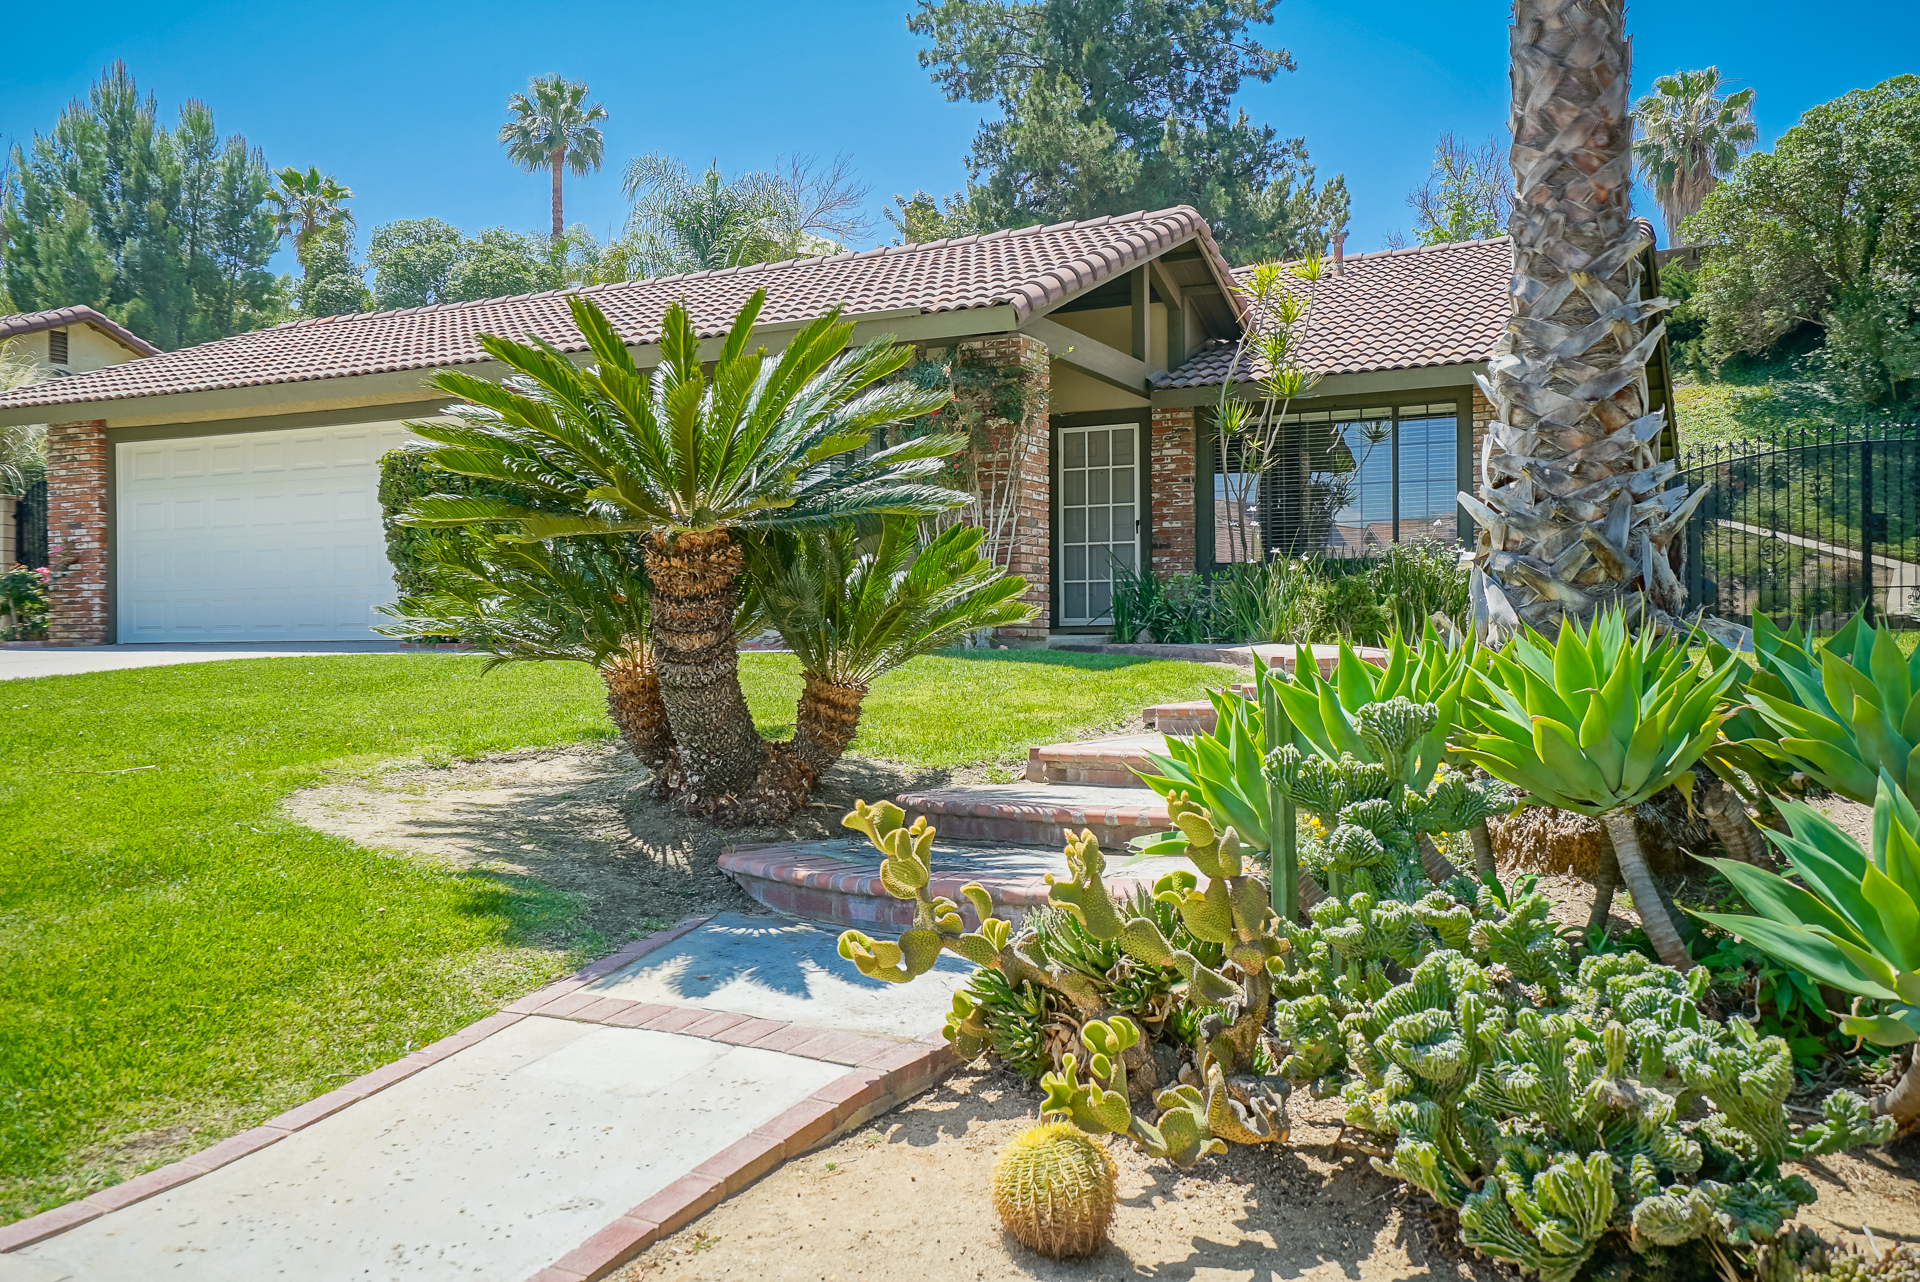 6835 Wilding Pl., Riverside CA 92506 listed by THE SISTER TEAM